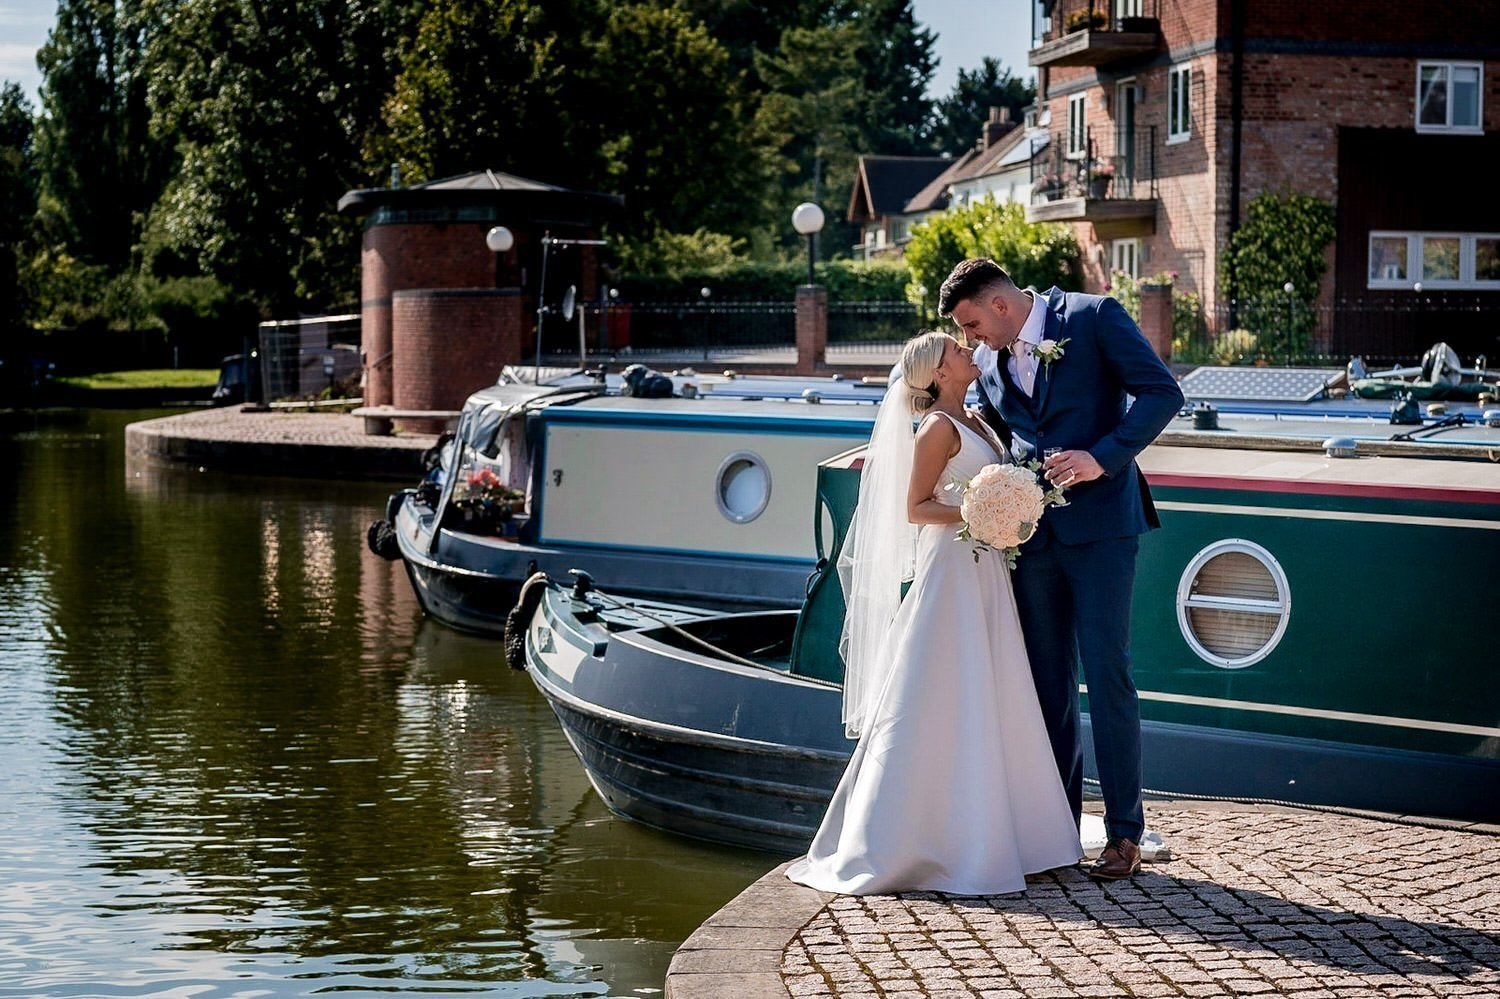 The Waterfront Market Harborough Weddings Photography Bride and Groom on the tow path in front of the barges